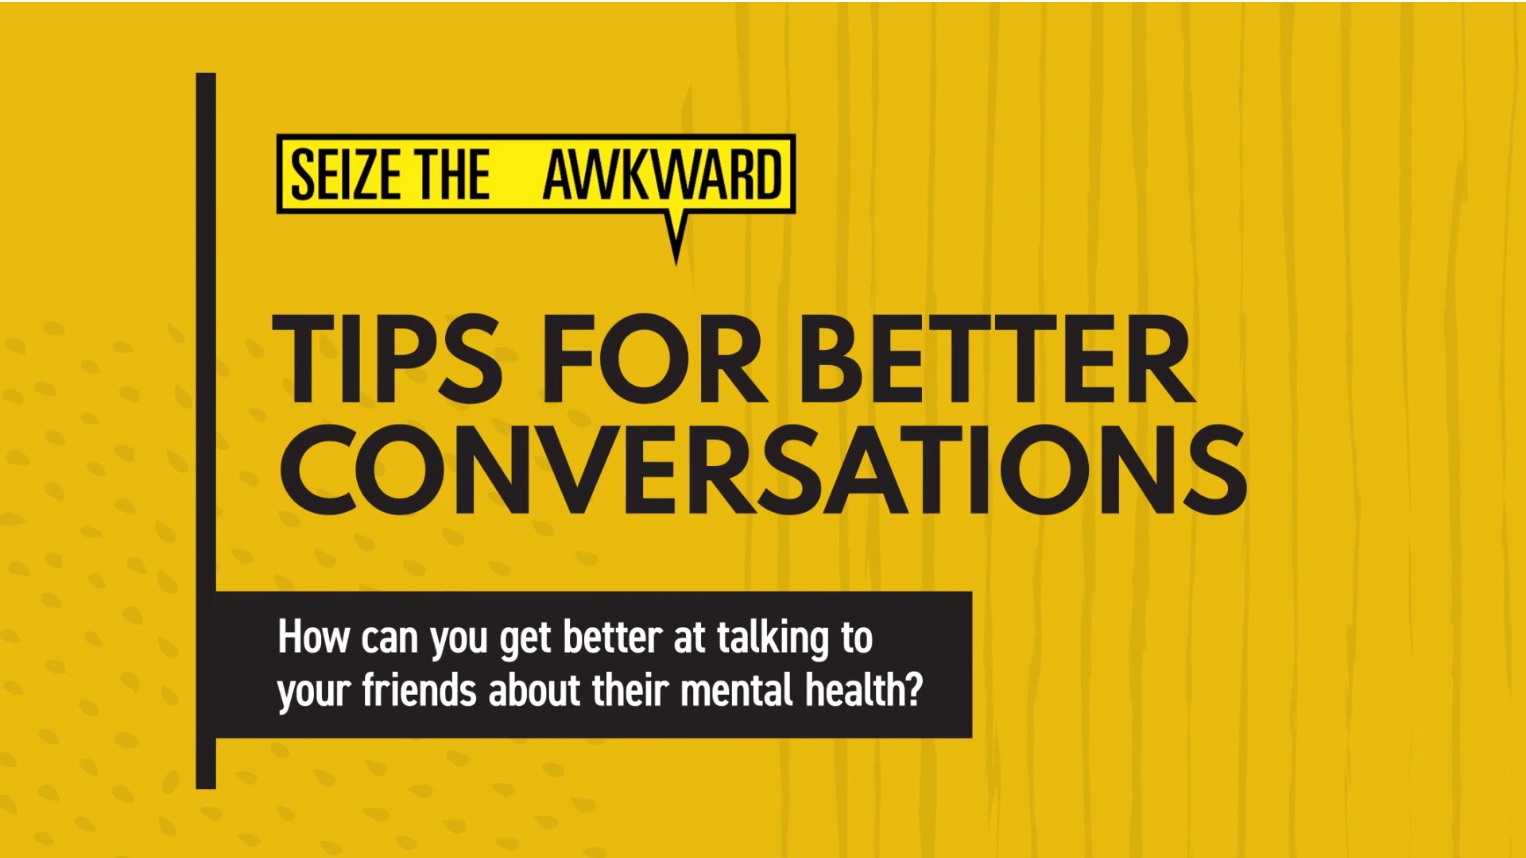 Tips for Better Conversations